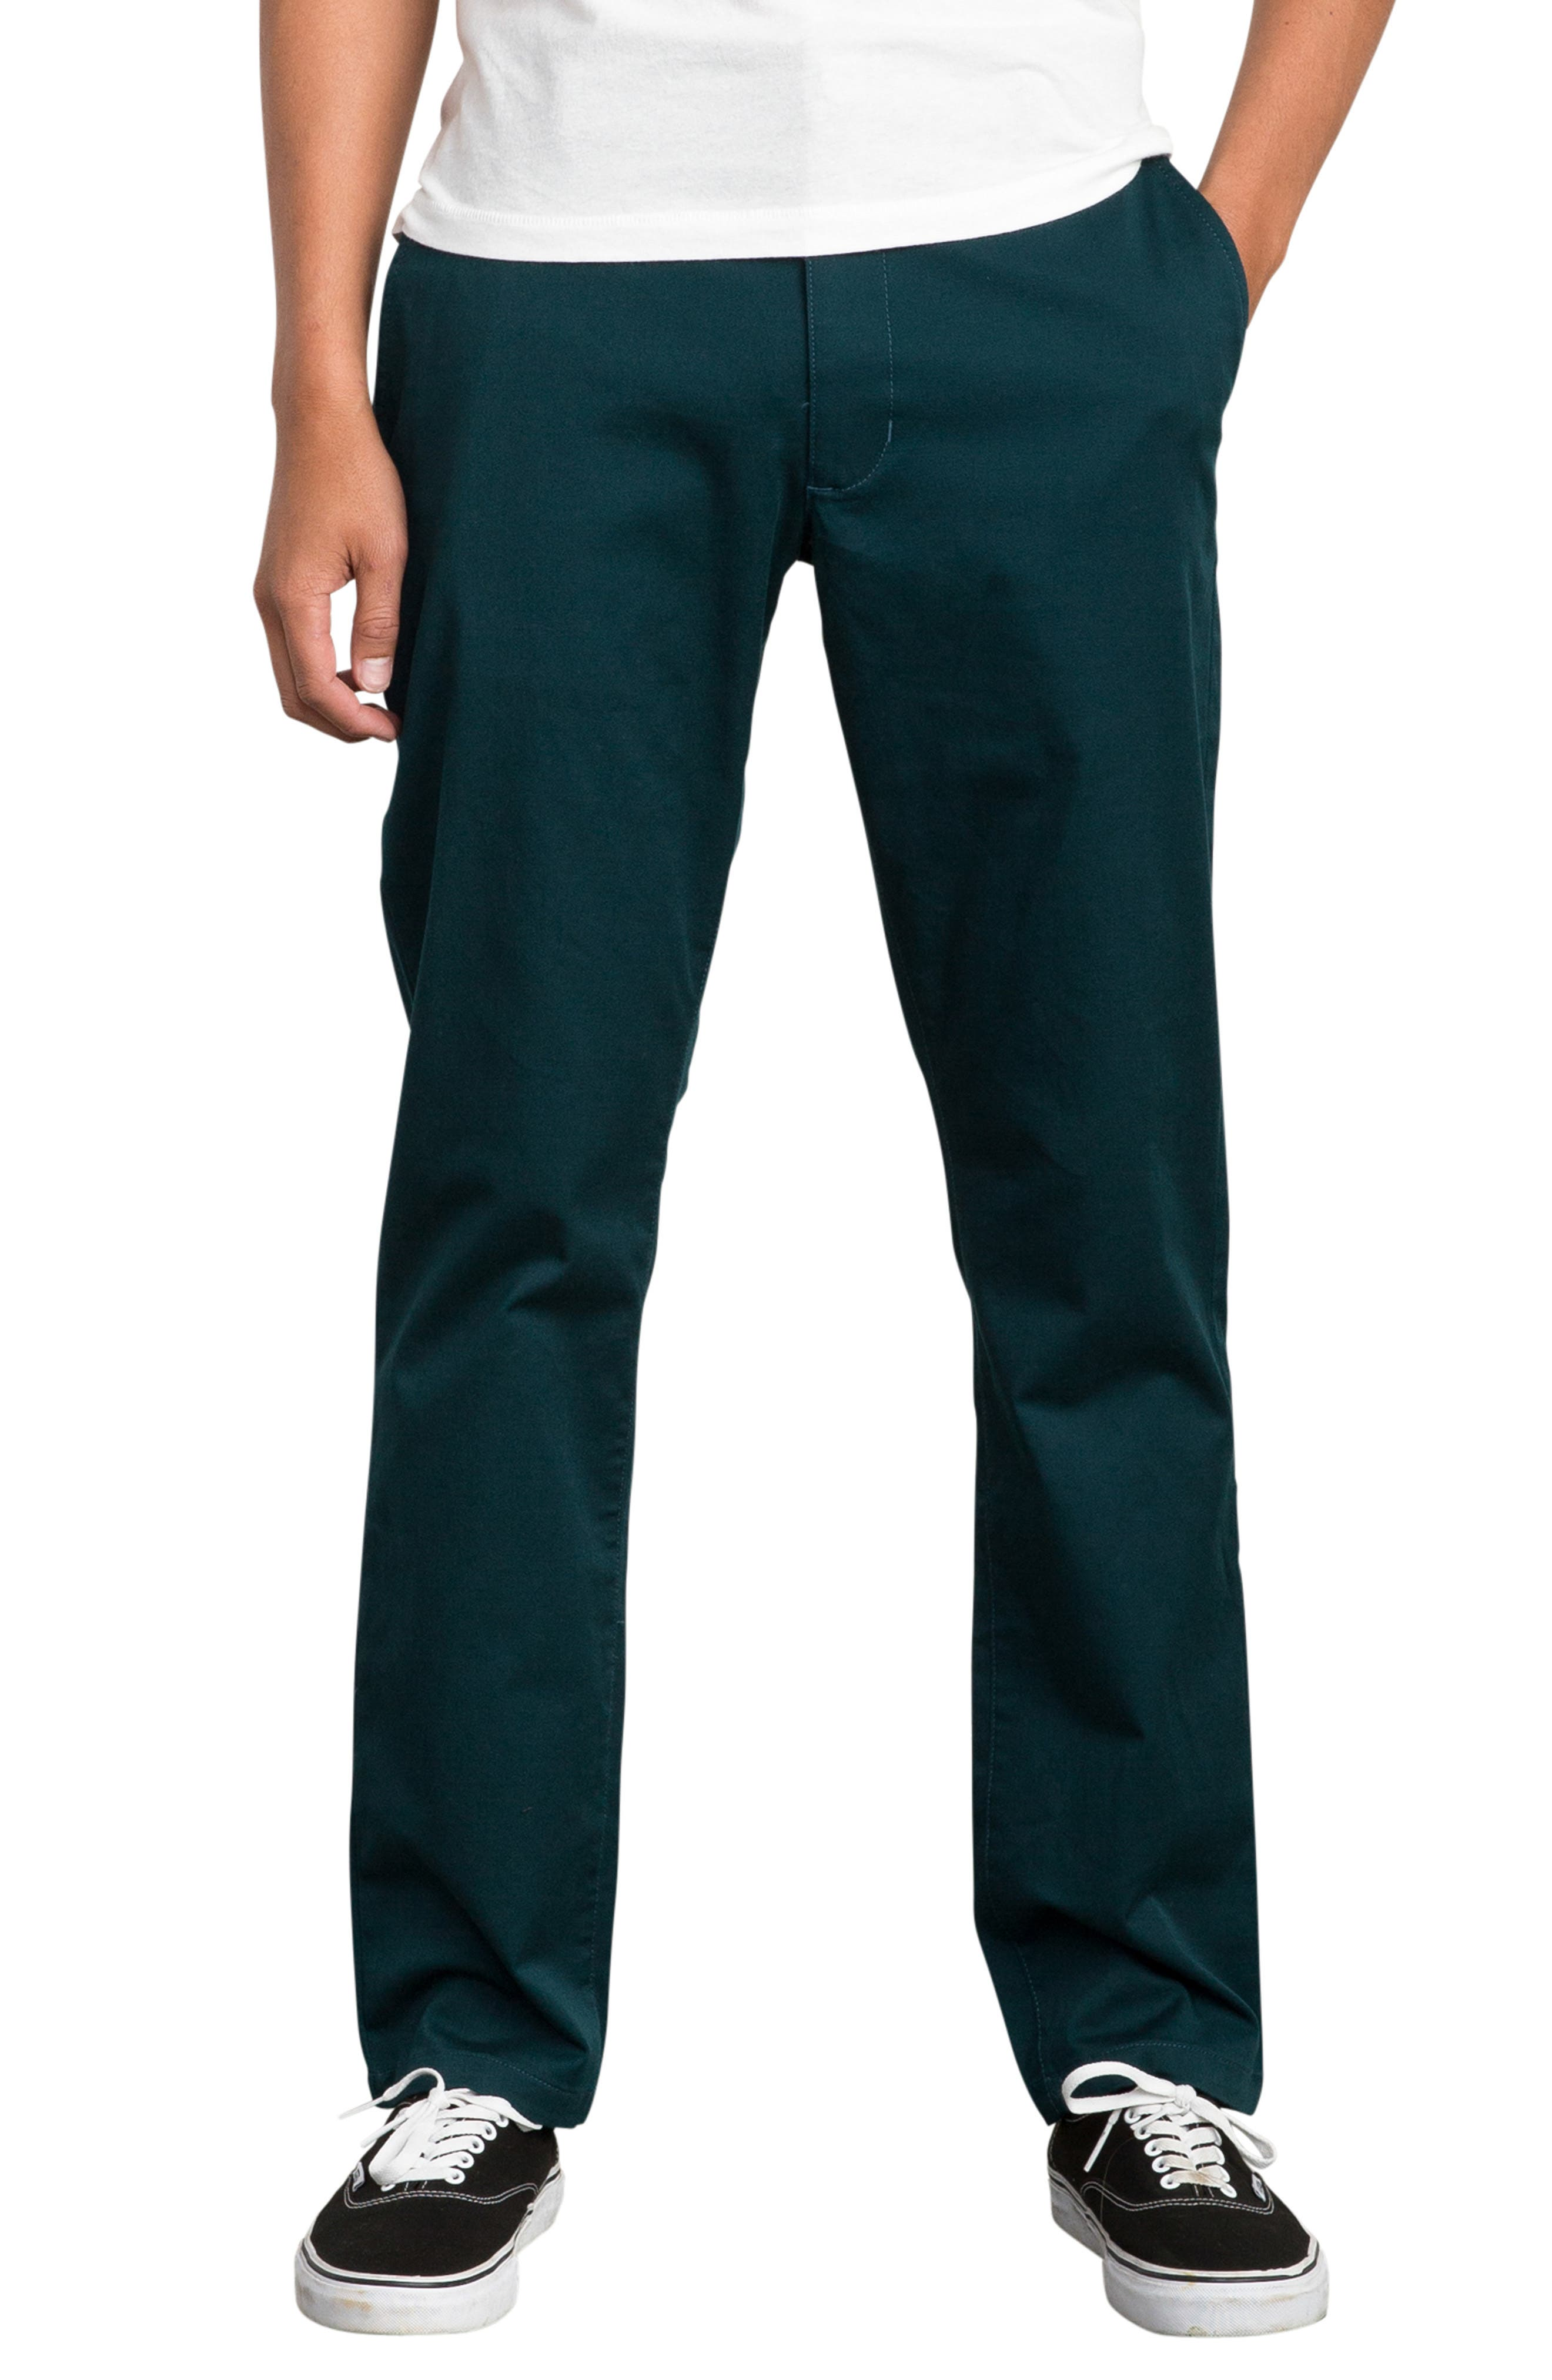 'The Week-End' Slim Straight Leg Stretch Twill Chinos,                             Main thumbnail 1, color,                             DARK FOREST